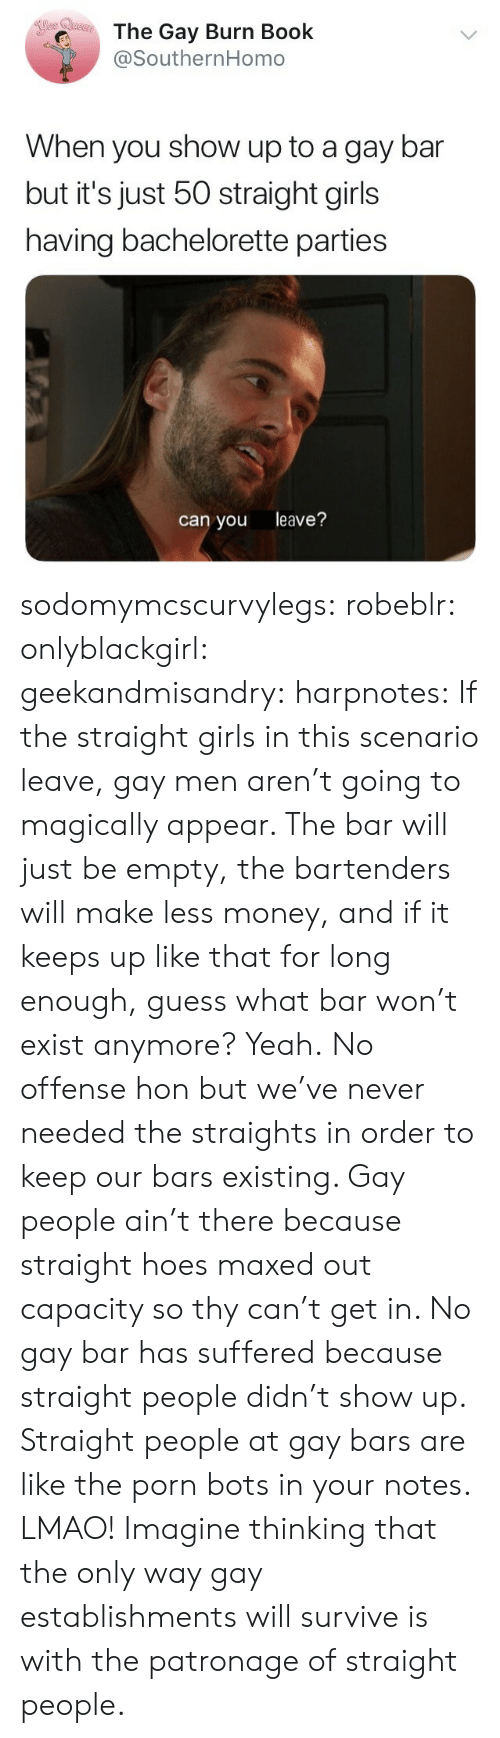 bots: The Gay Burn Book  @SouthernHomo  When you show up to a gay bar  but it's just 50 straight girls  having bachelorette parties  can you leave? sodomymcscurvylegs:  robeblr:  onlyblackgirl:   geekandmisandry:   harpnotes:  If the straight girls in this scenario leave, gay men aren't going to magically appear. The bar will just be empty, the bartenders will make less money, and if it keeps up like that for long enough, guess what bar won't exist anymore? Yeah.  No offense hon but we've never needed the straights in order to keep our bars existing.    Gay people ain't there because straight hoes maxed out capacity so thy can't get in. No gay bar has suffered because straight people didn't show up.    Straight people at gay bars are like the porn bots in your notes.   LMAO! Imagine thinking that the only way gay establishments will survive is with the patronage of straight people.